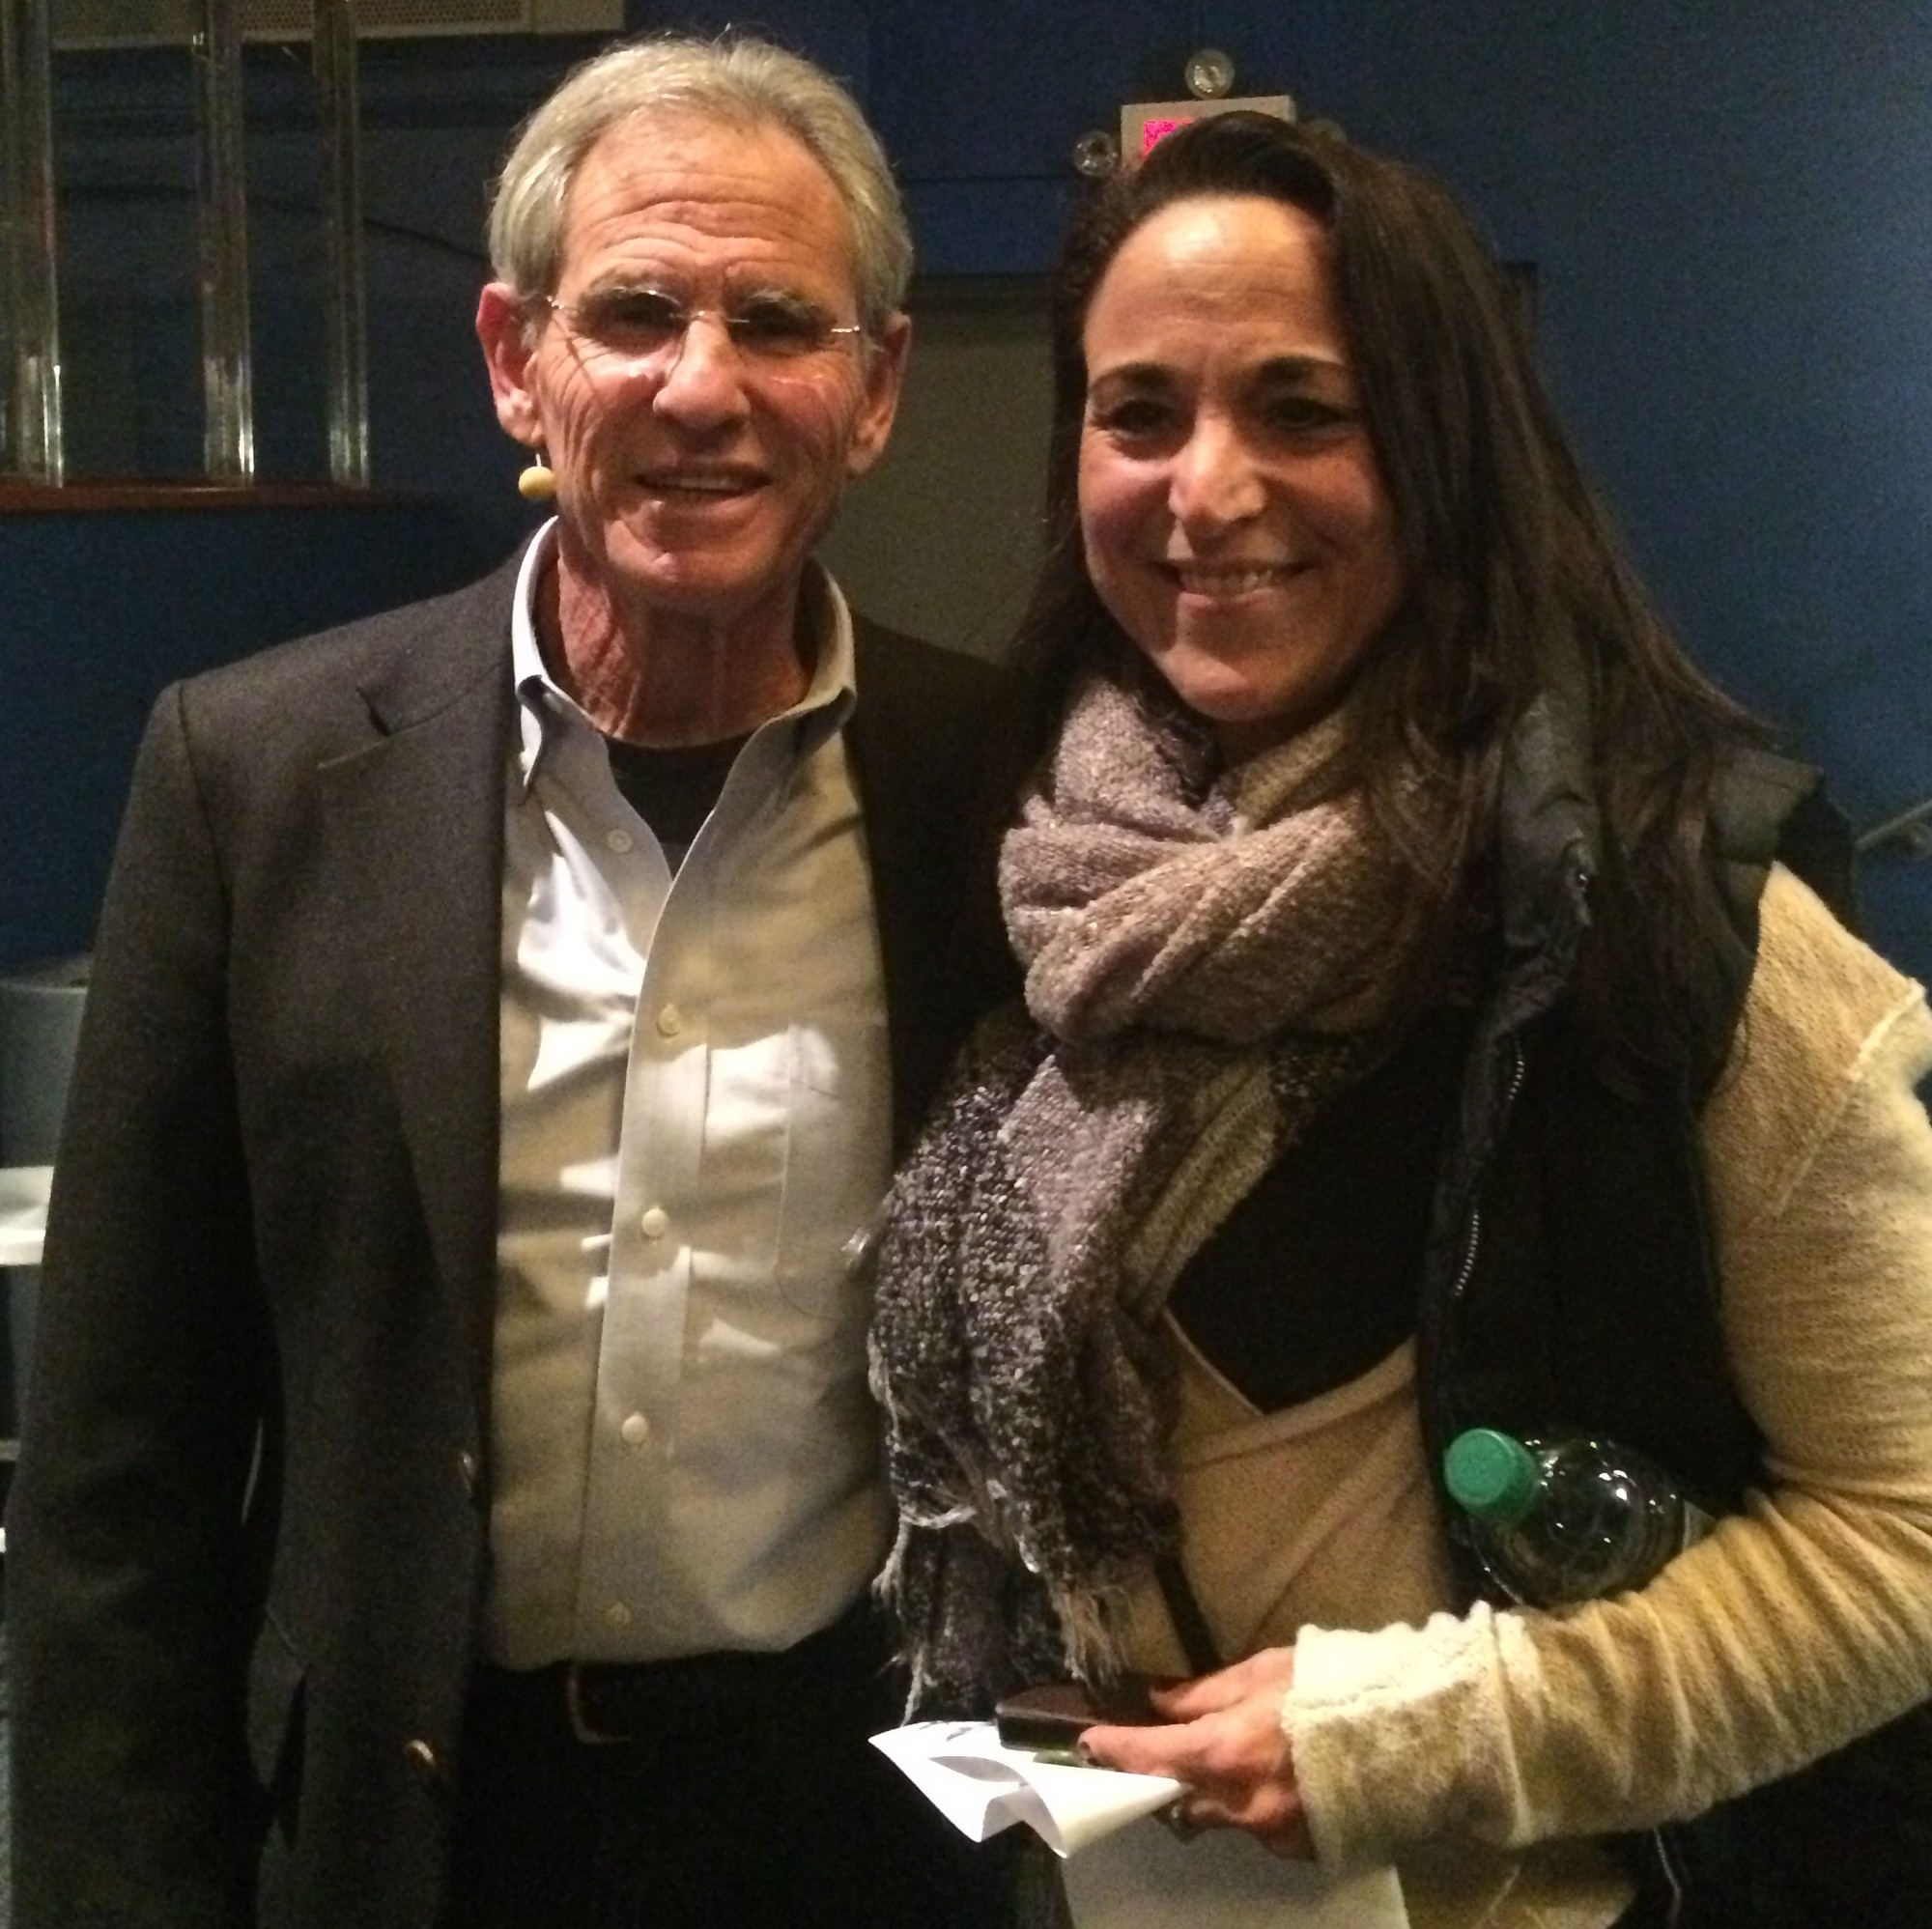 Jon Kabat-Zinn, left, with DeBetta in November 2015, developed the Mindfulness-Based Stress Reduction program at the University of Massachusetts Medical Center in 1979, which used specific exercises to help patients dealing with chronic pain.